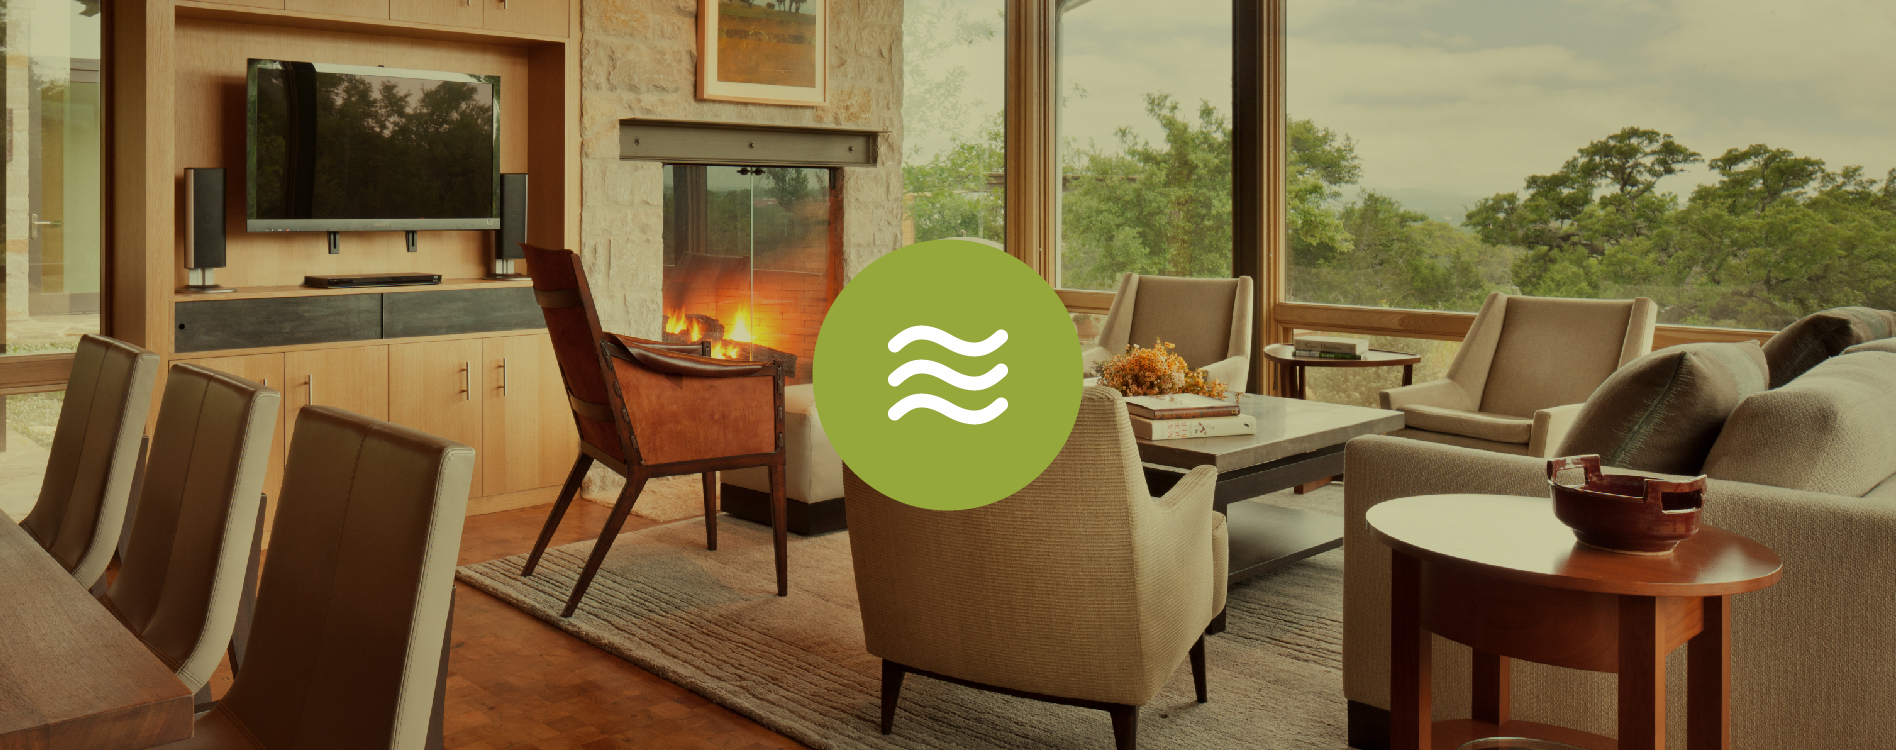 4 ways to improve your home 39 s indoor air quality green for Green home guide